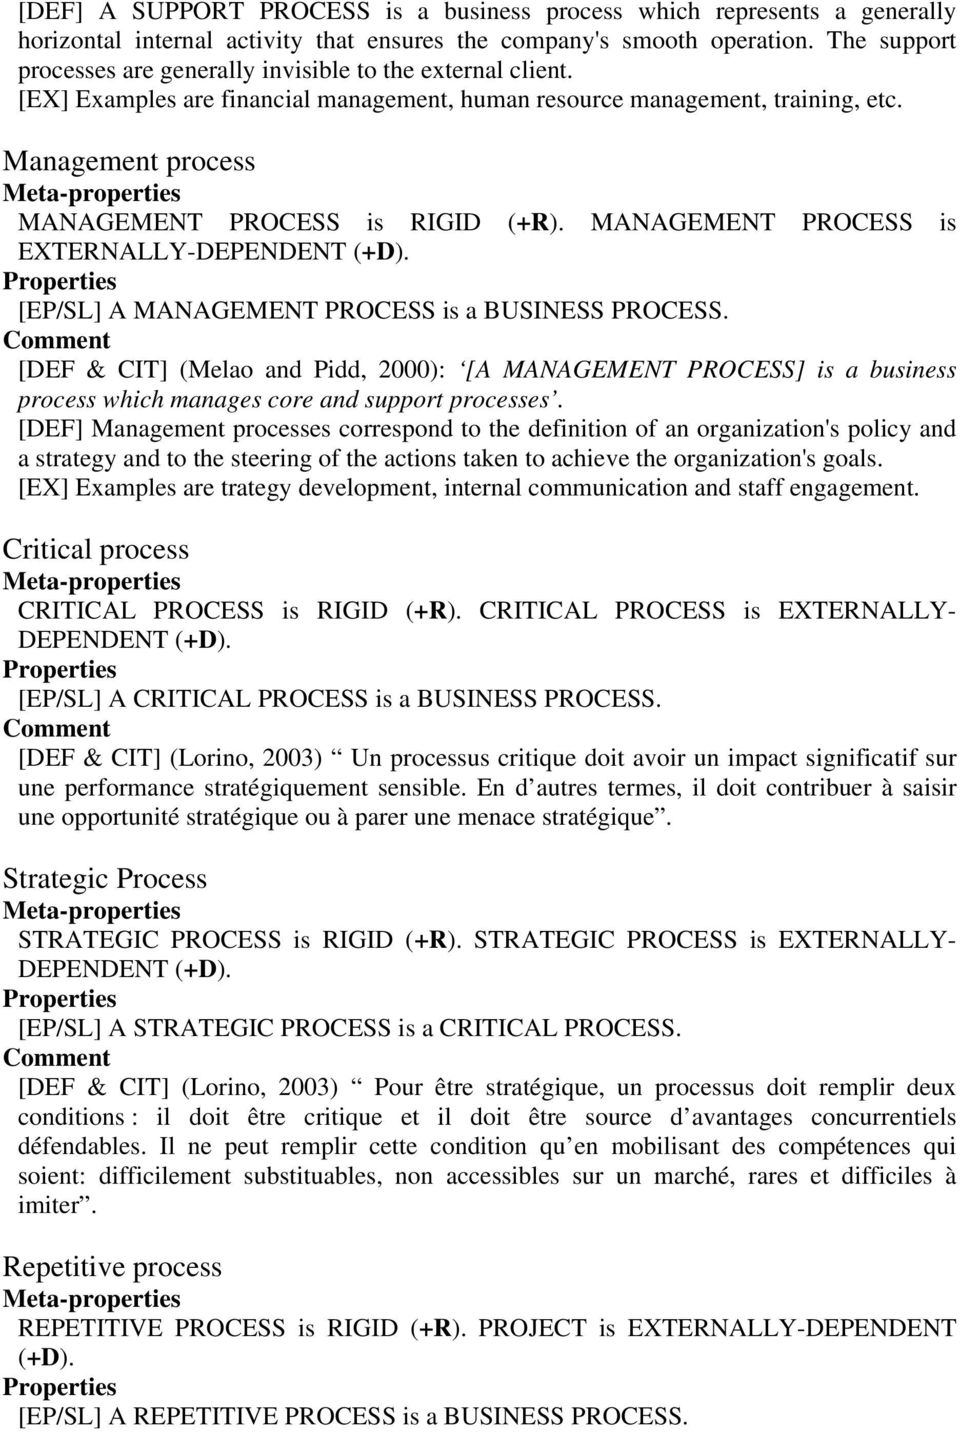 Management process MANAGEMENT PROCESS is RIGID (+R). MANAGEMENT PROCESS is EXTERNALLY-DEPENDENT (+D). [EP/SL] A MANAGEMENT PROCESS is a BUSINESS PROCESS.